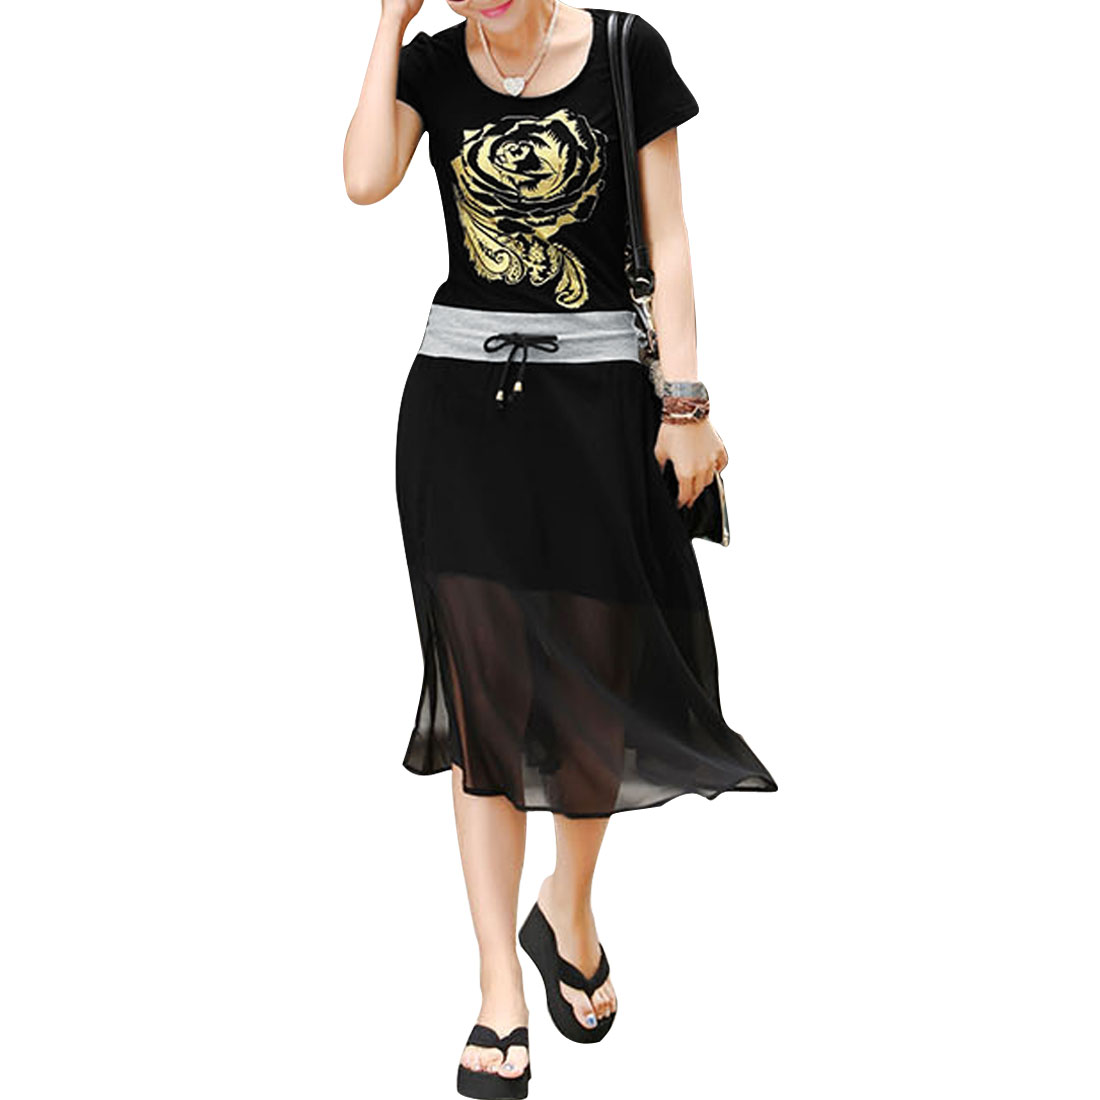 Women Short Sleeve Round Neck Panel Style Summer Casual Dress Black Xs